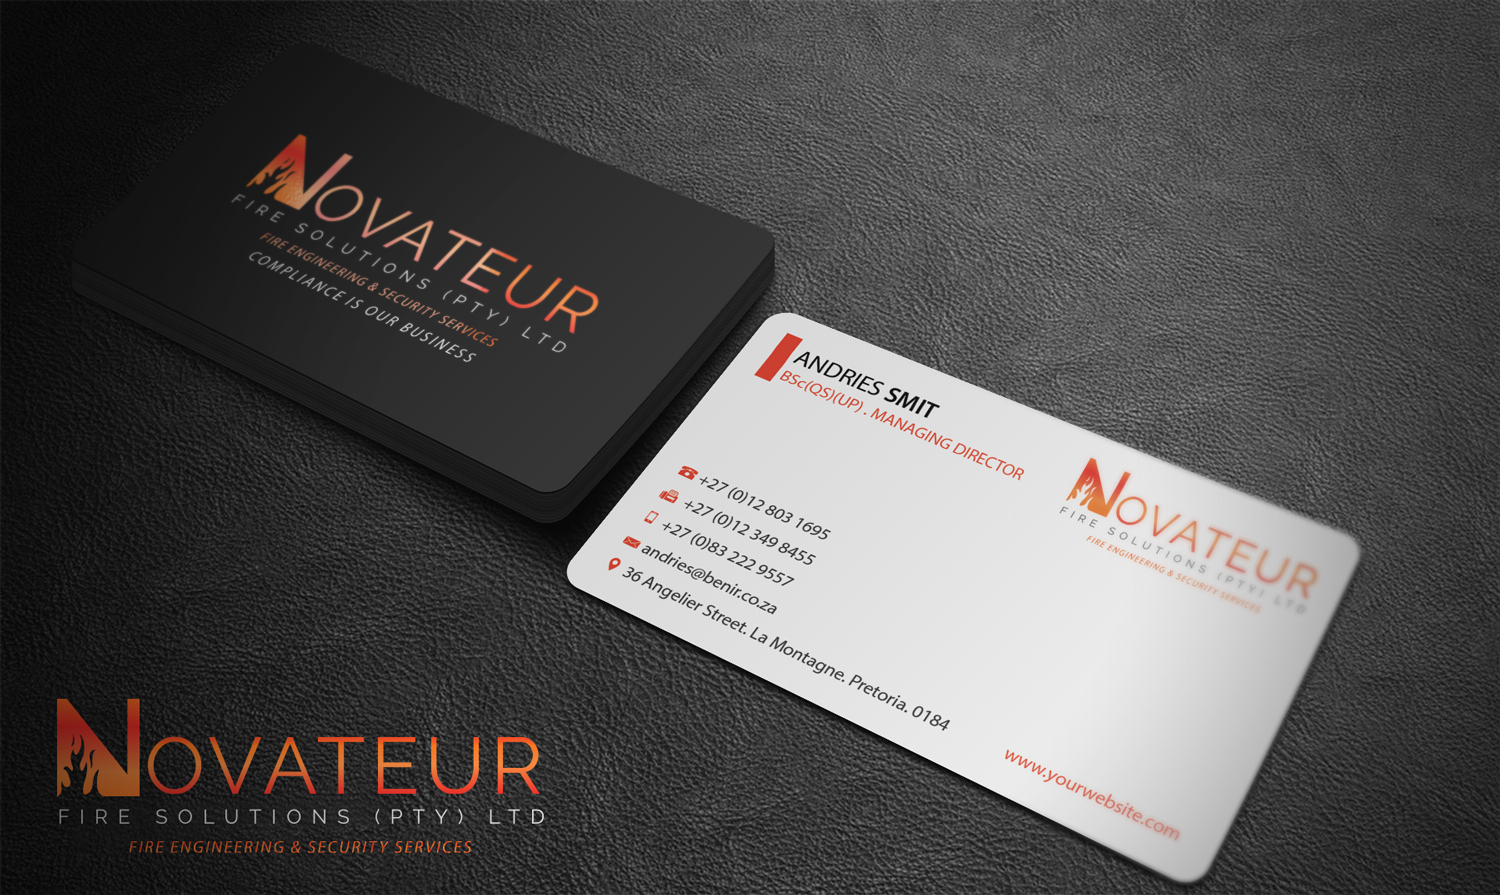 Professional serious fire safety business card design for business card design by riz for novateur fire solutions design 15702057 colourmoves